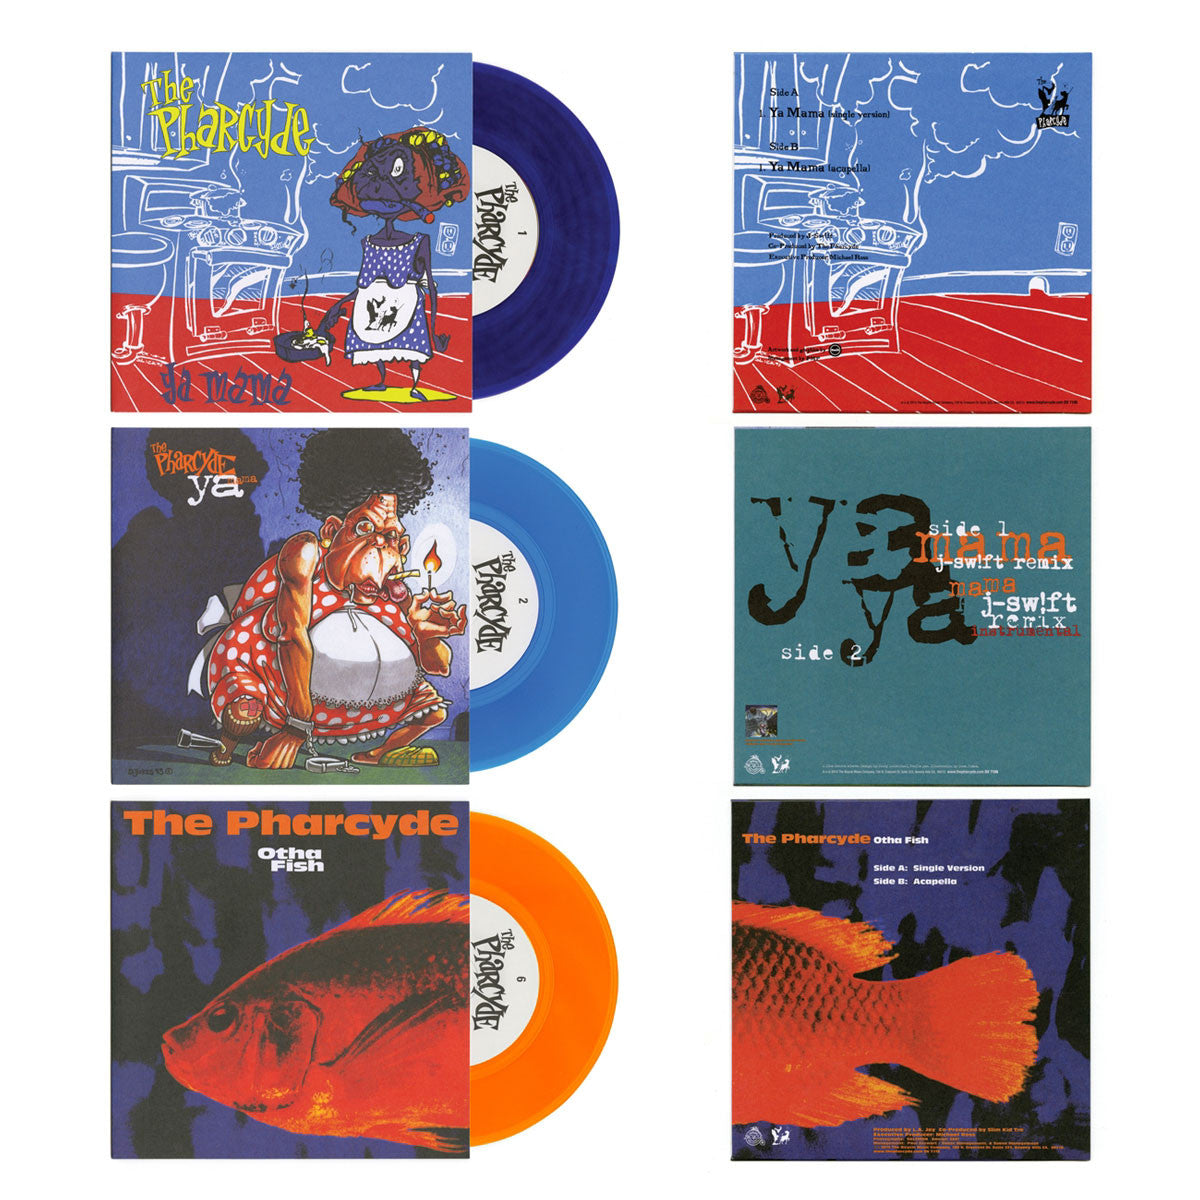 "The Pharcyde: Bizarre Ride II The Pharcyde - The Singles (Colored Vinyl) Vinyl 7"" Boxset"